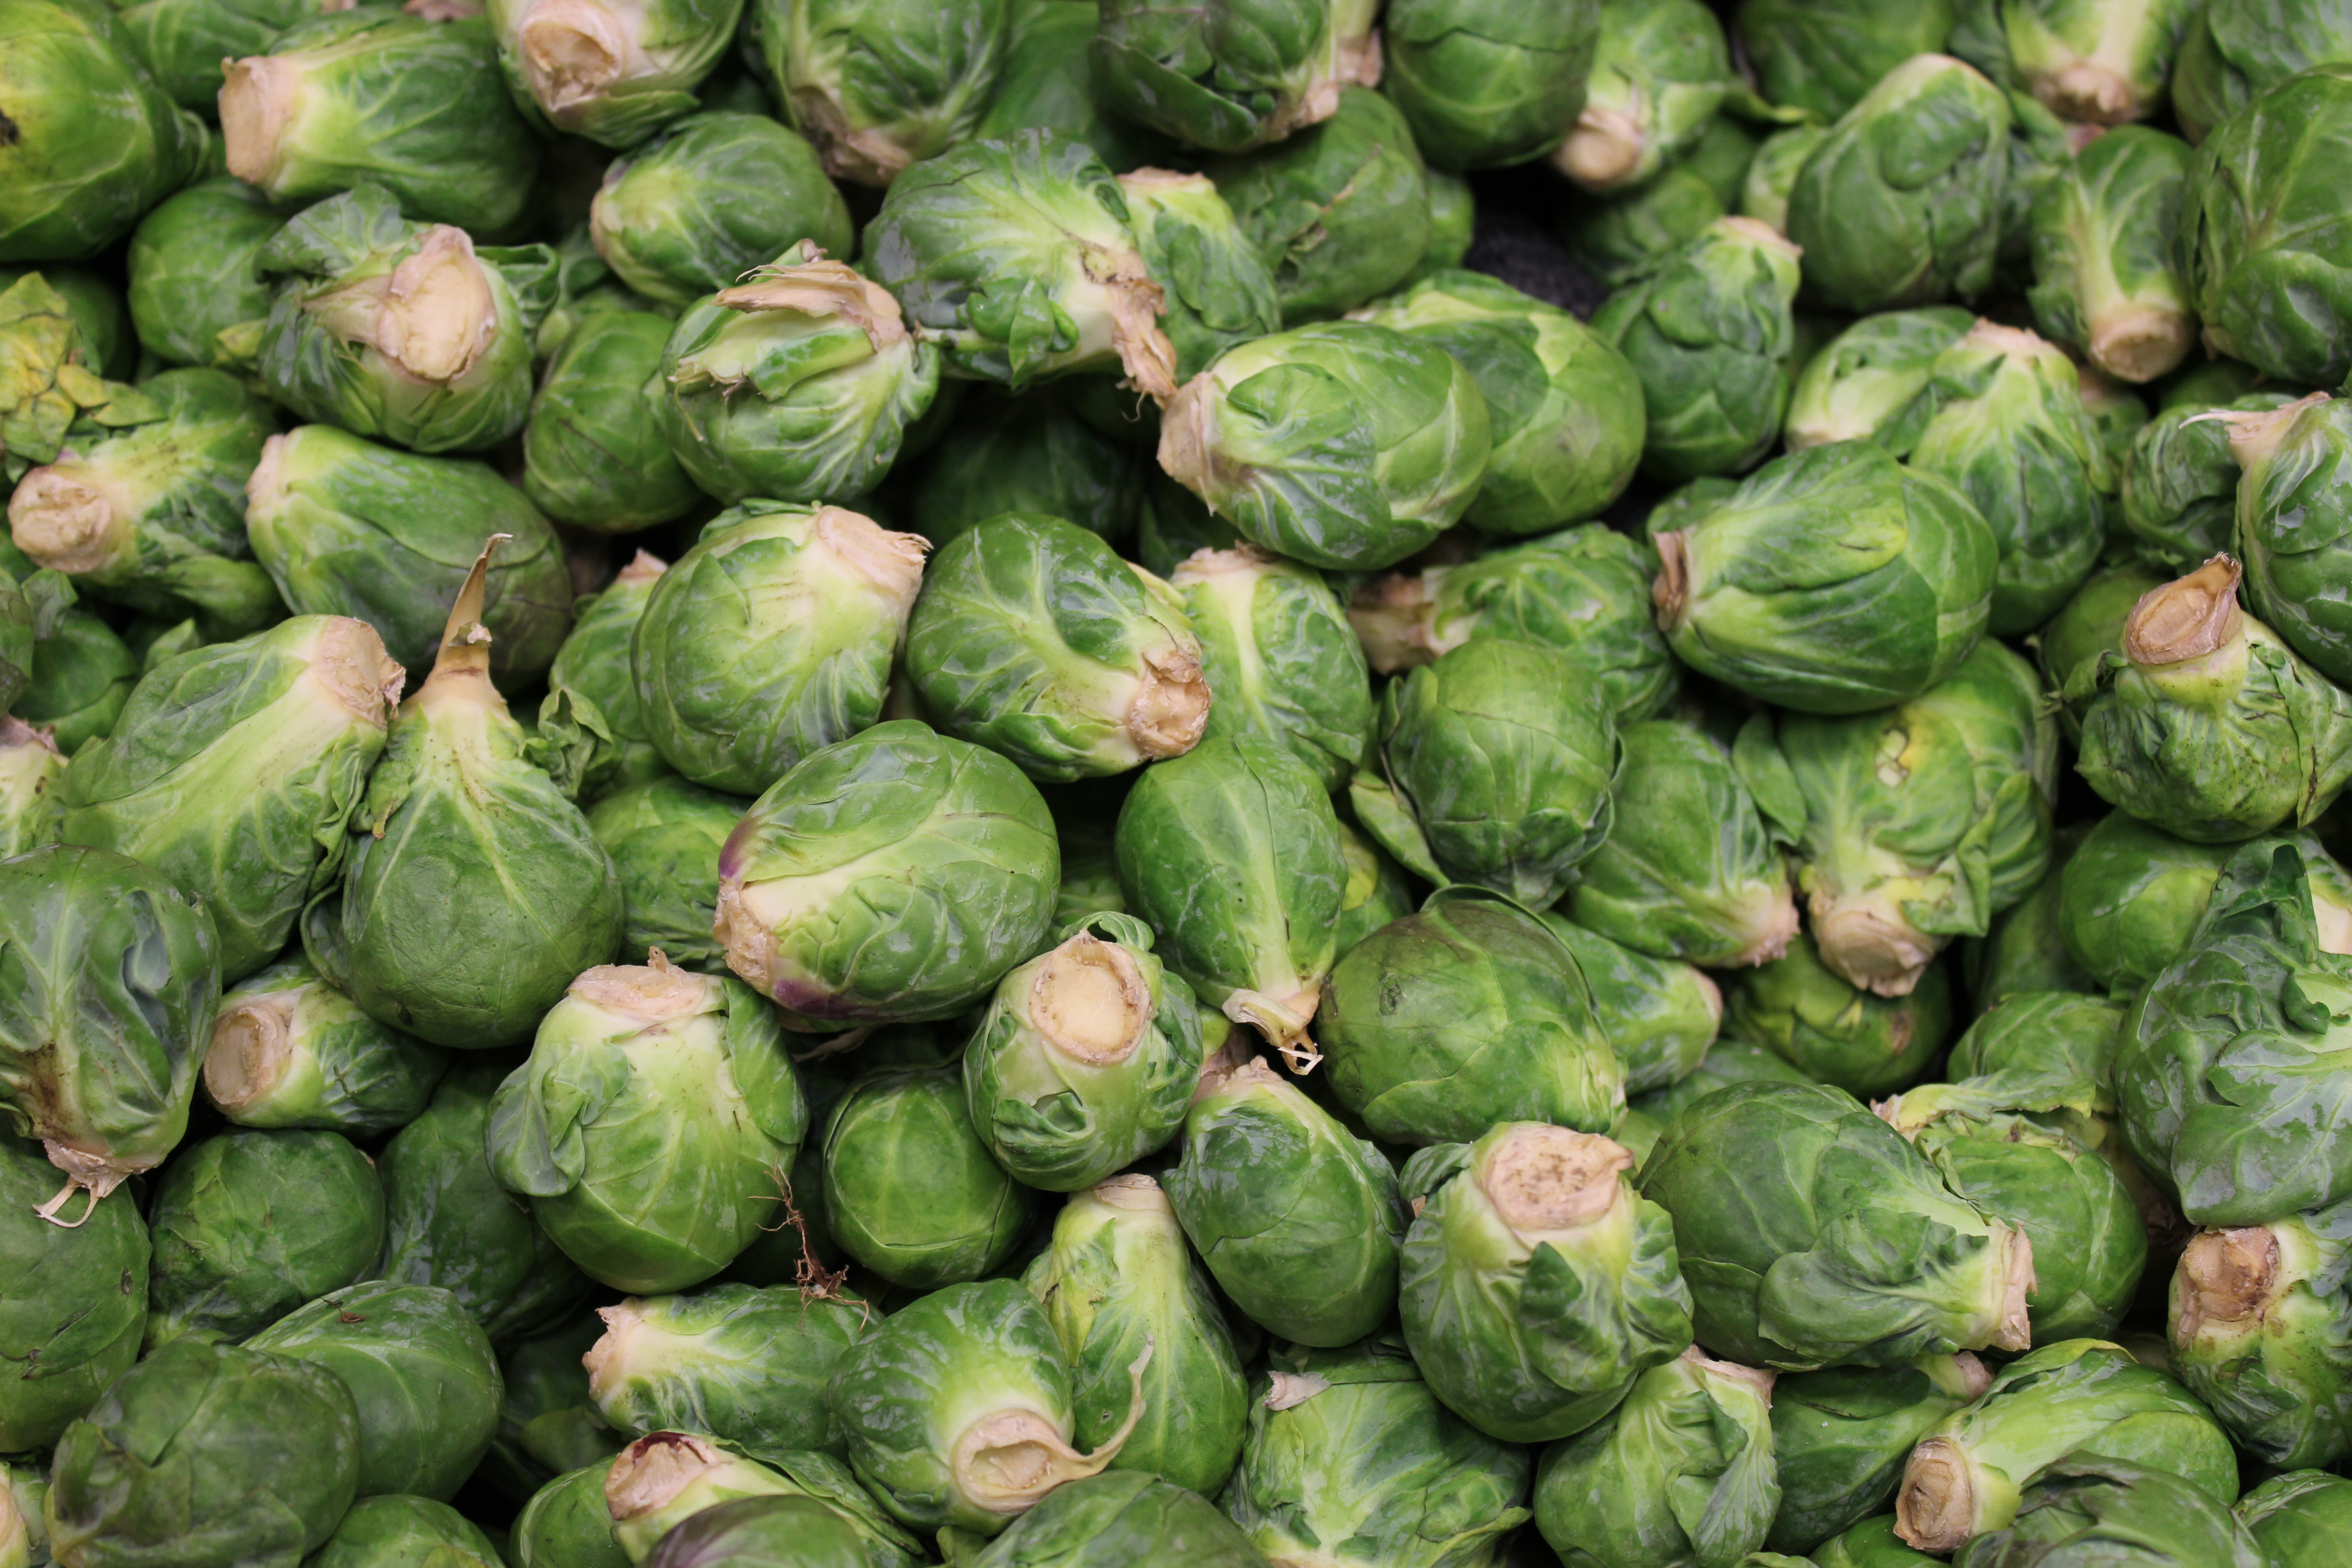 File:Brussel Sprouts bunch.JPG - Wikimedia Commons